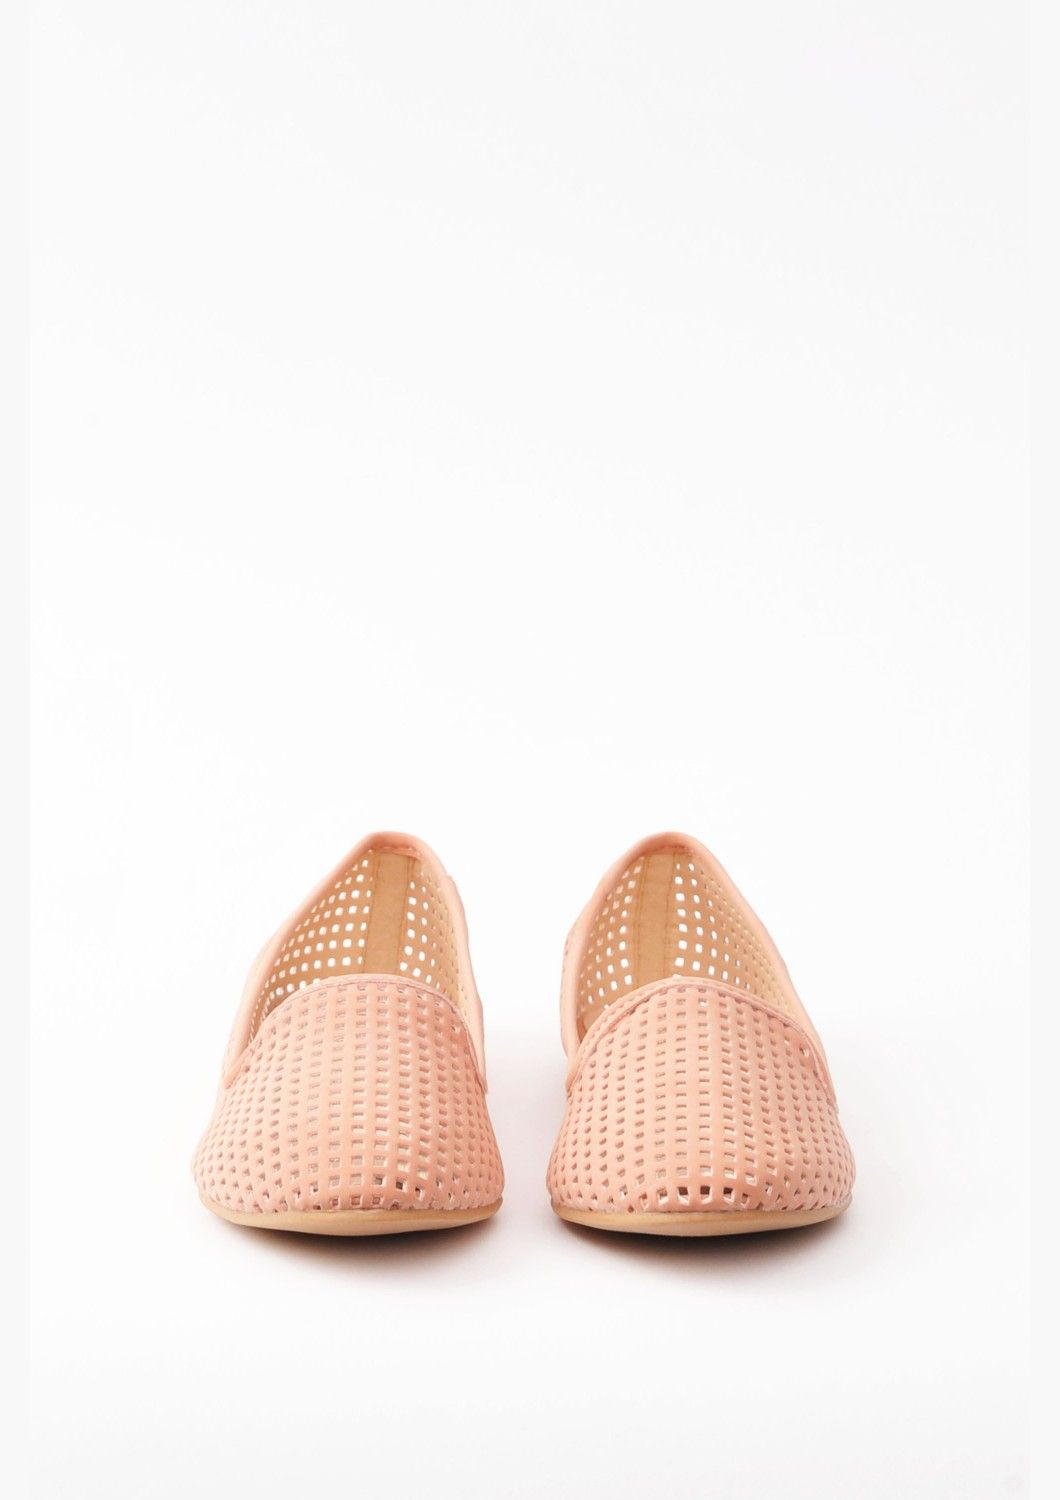 The loveliest pink flats for Spring.